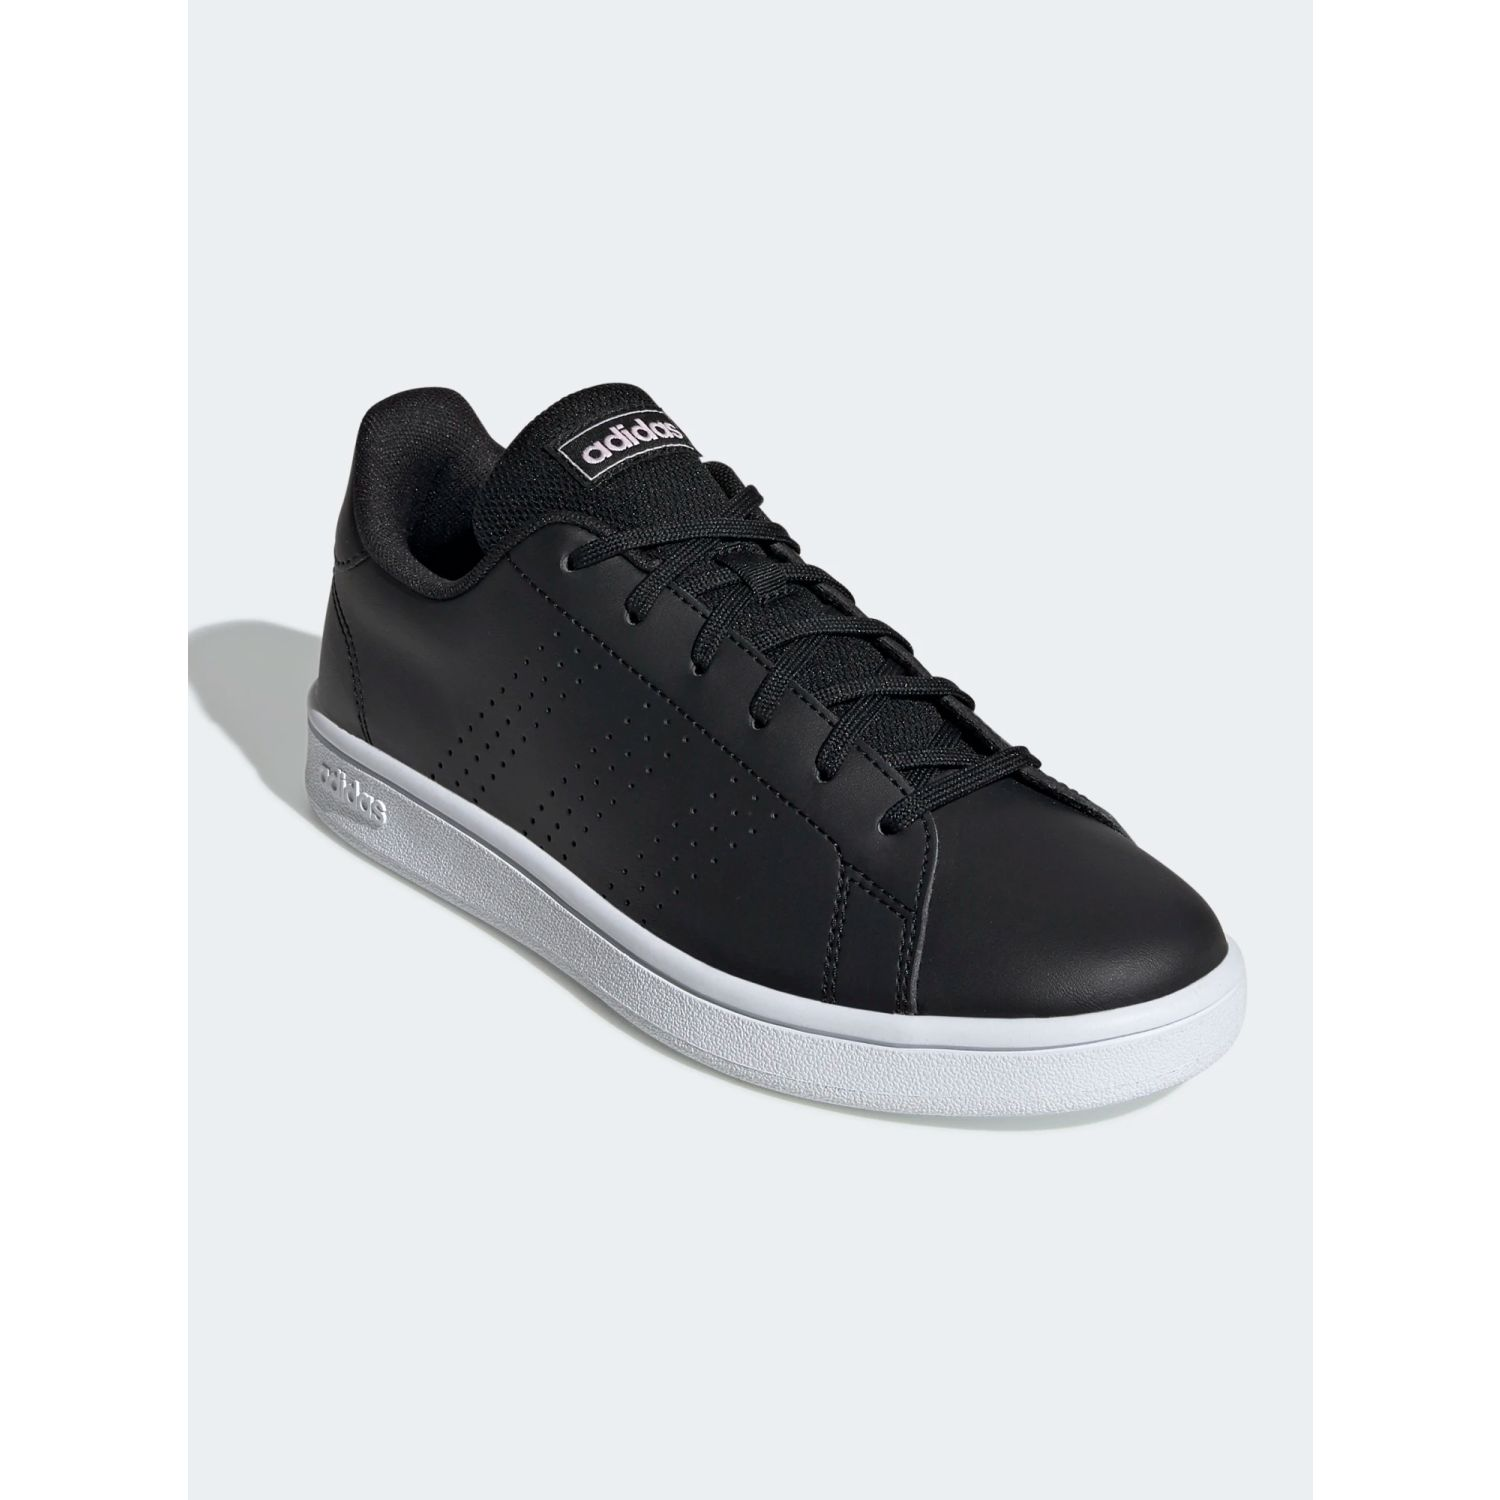 Adidas ADVANTAGE BASE Negro / blanco Mujeres